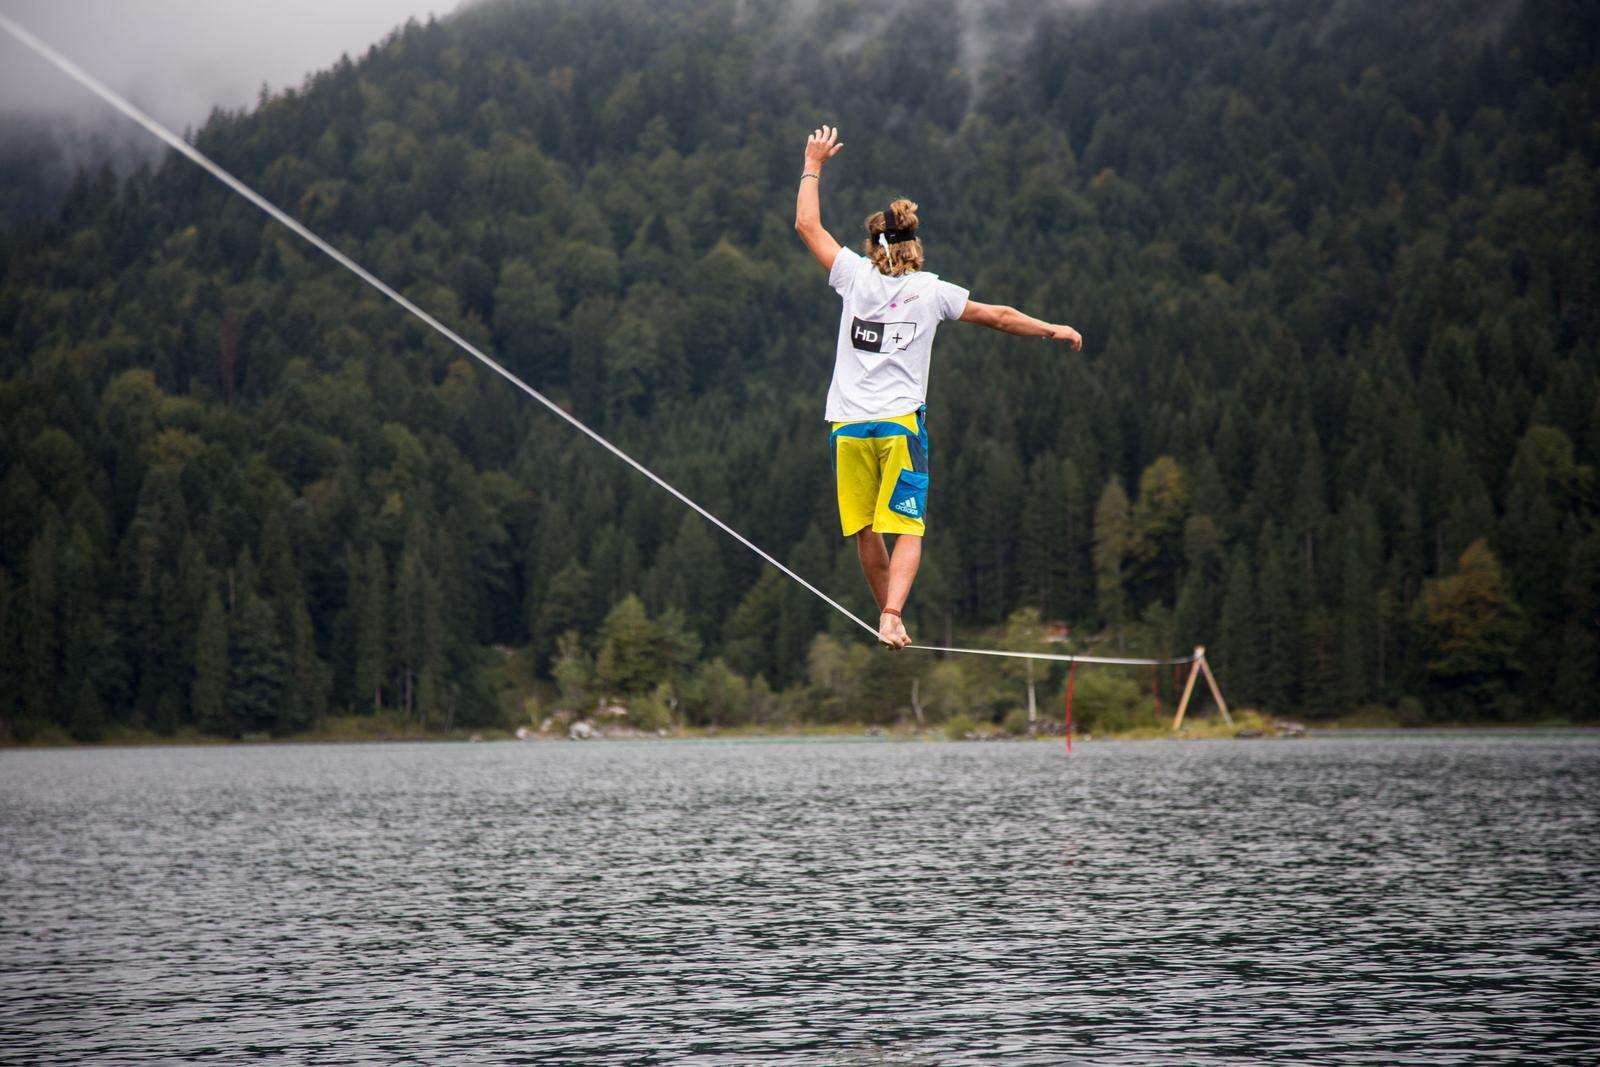 Eibsee-slackline-world-record (10).jpg